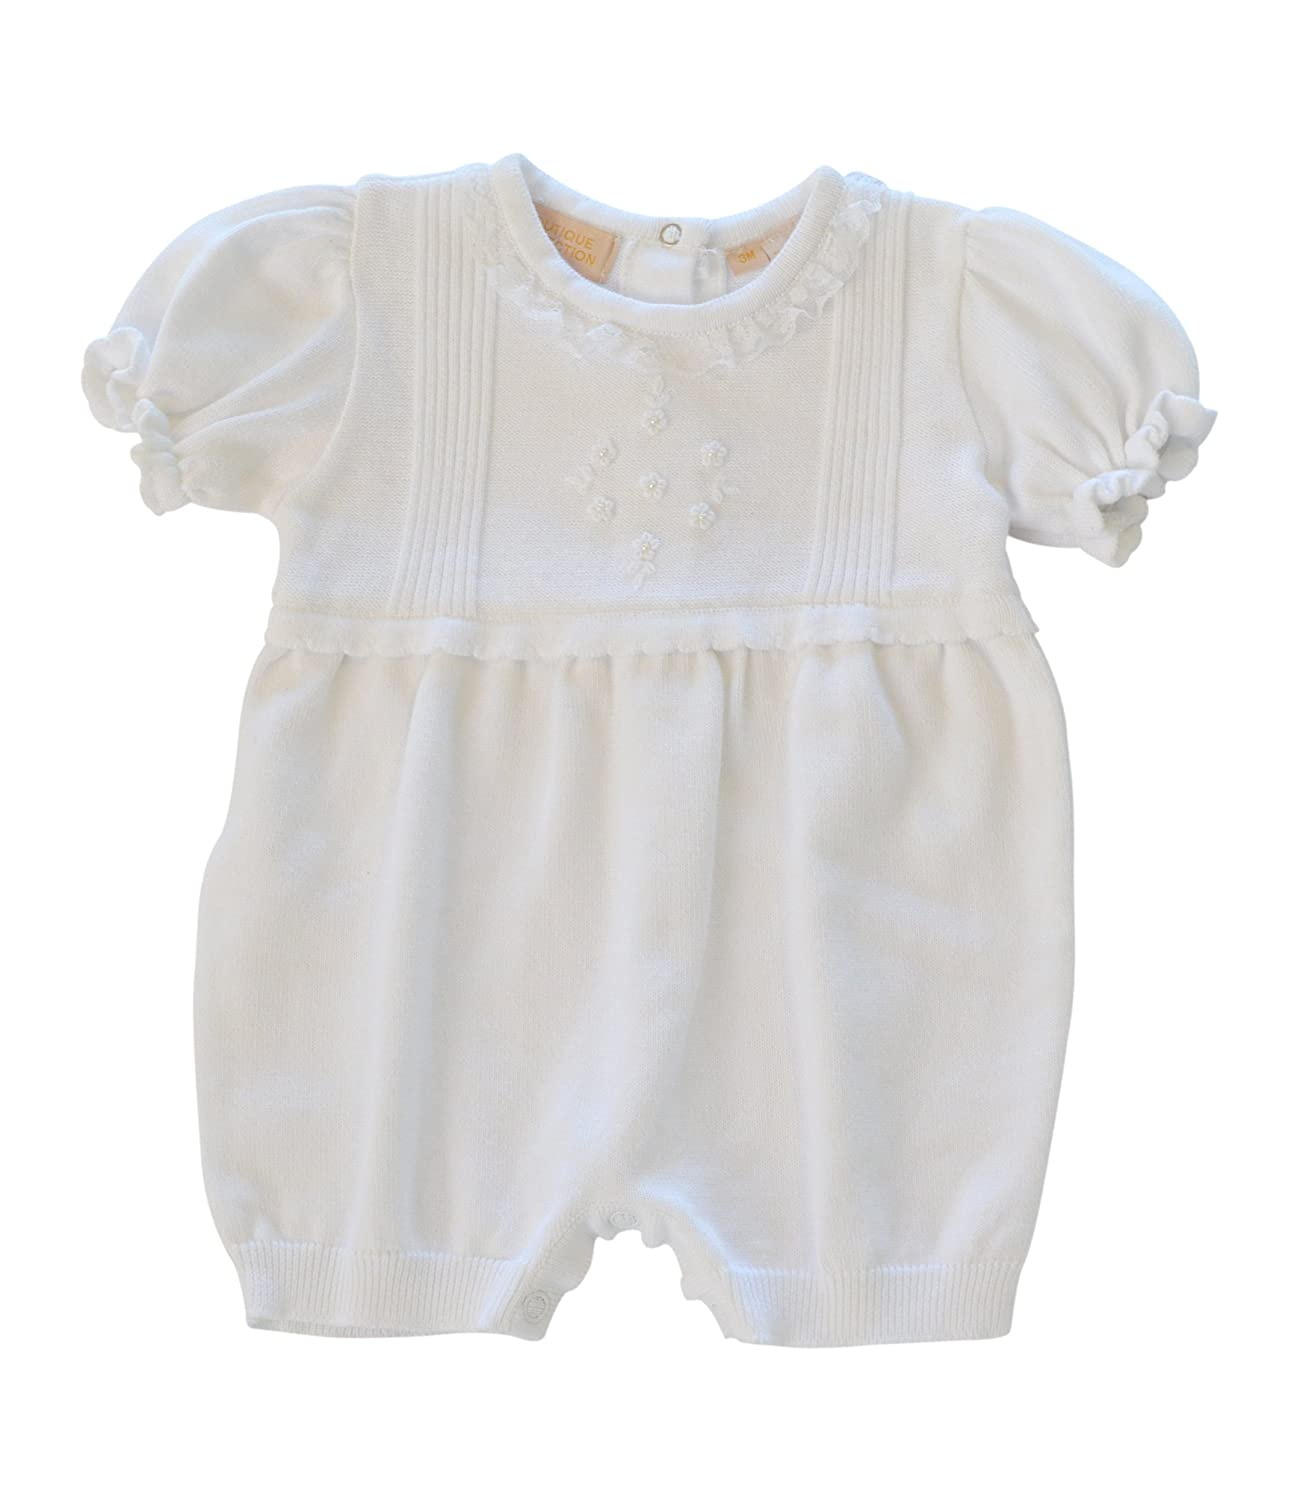 Boutique Collection Baby Girl's Knit Christening Bloomer W/Flower Detail